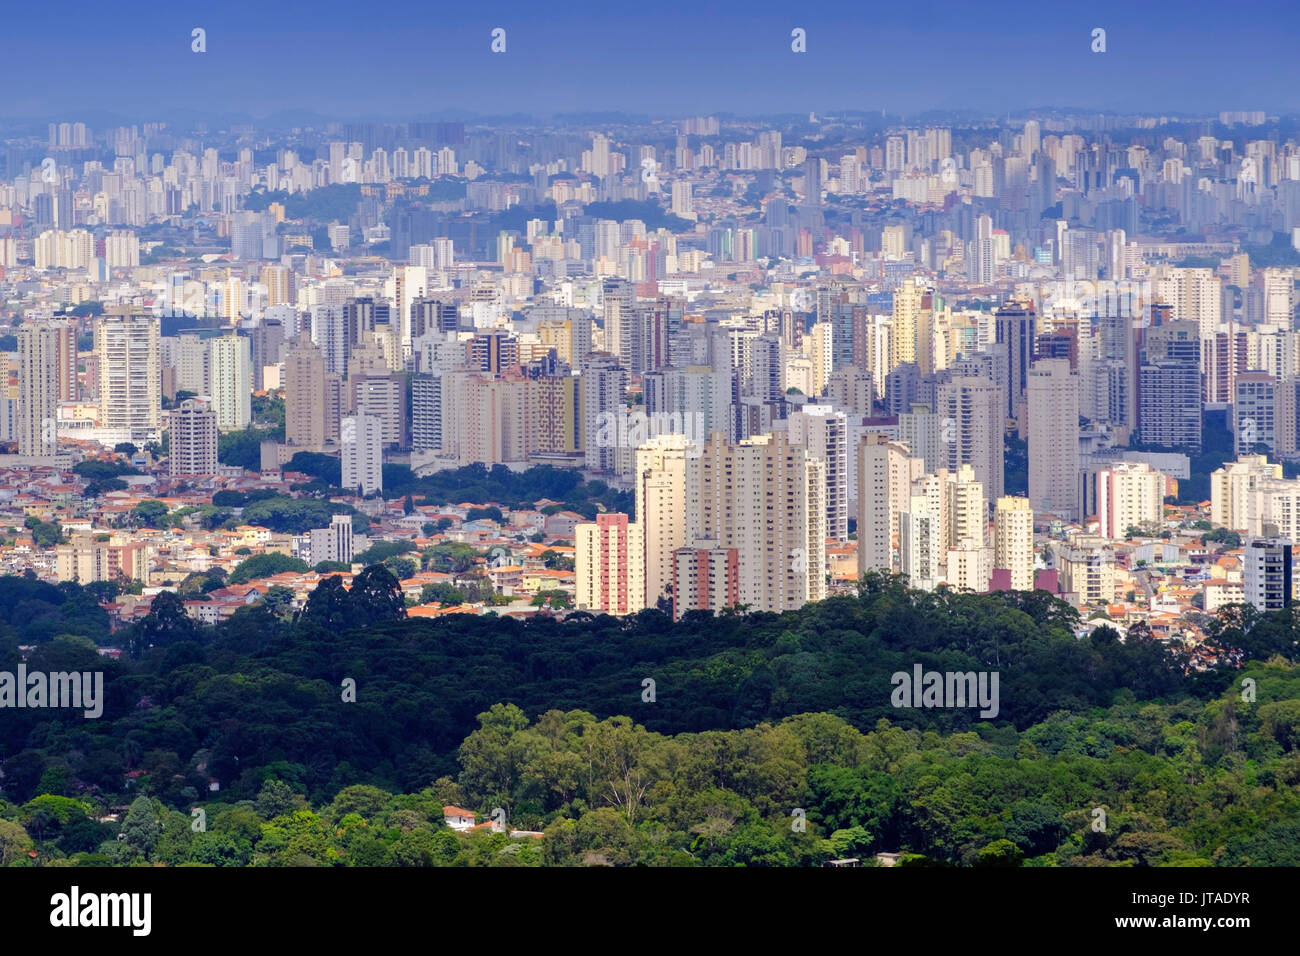 View of Sao Paulo city from the Serra da Cantareira State Park, Sao Paulo, Brazil - Stock Image